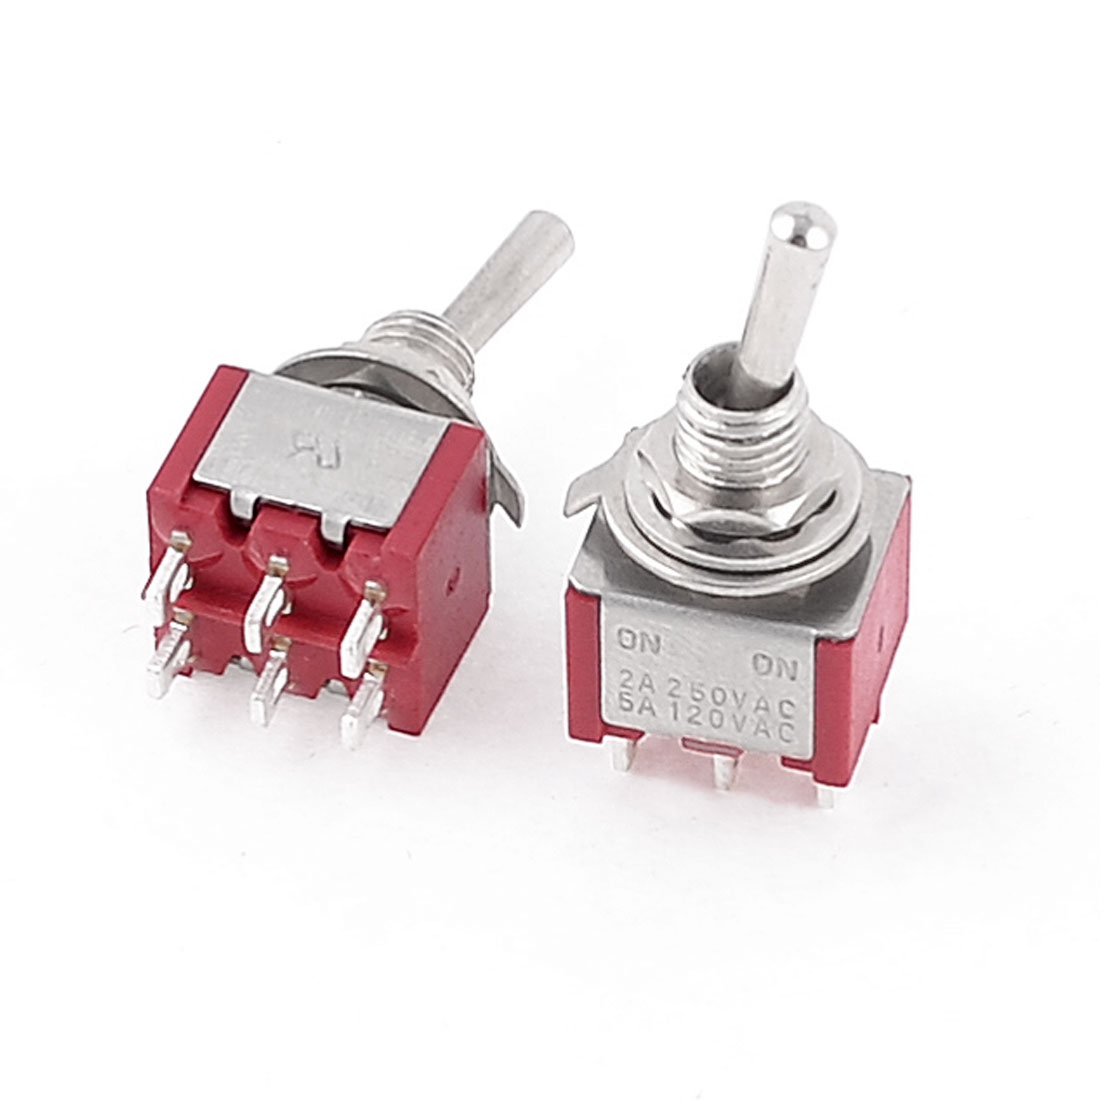 2-Pcs-AC-250V-2A-120V-5A-ON-ON-2-Way-DPDT-6-Pins-Toggle-Switch